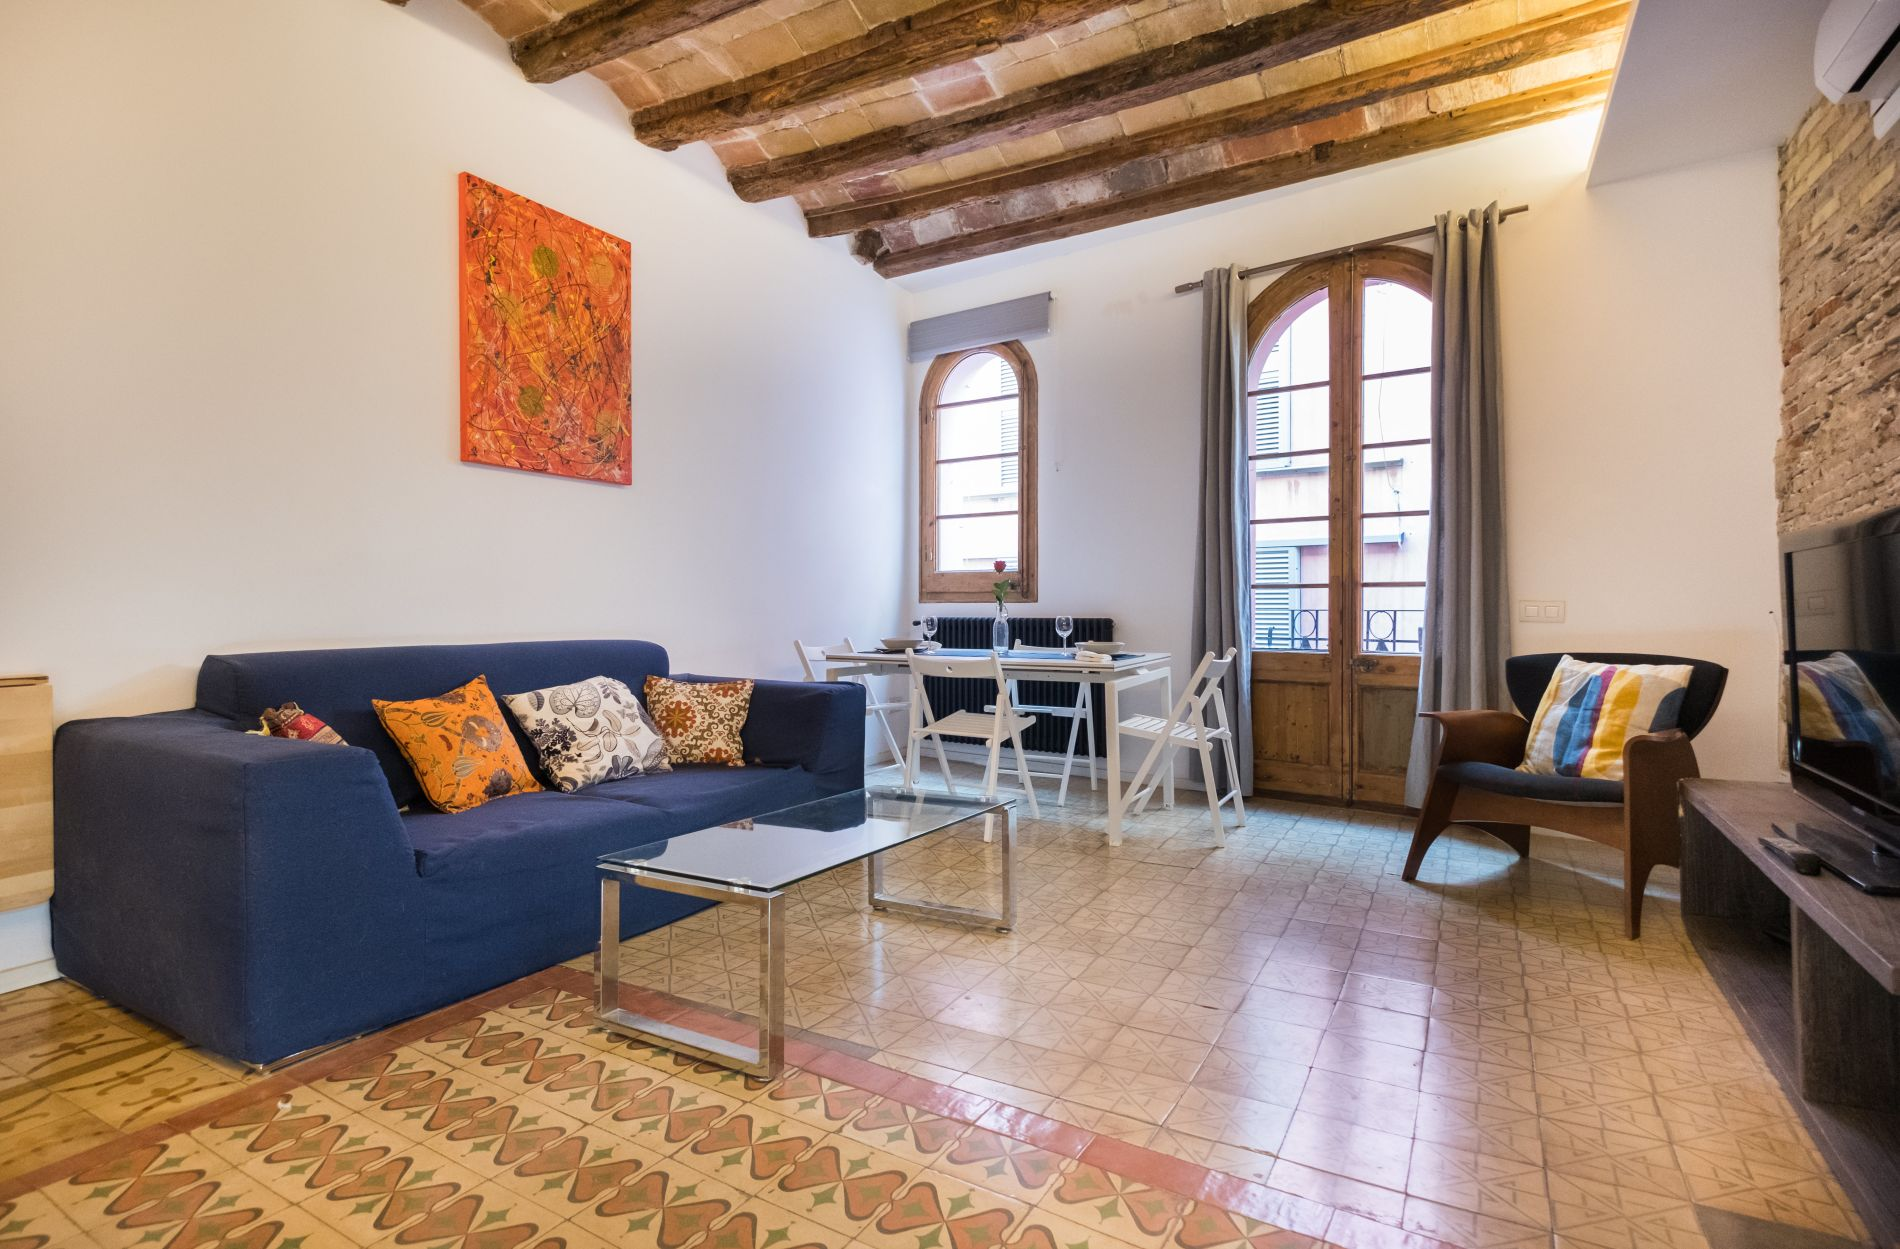 Serviceed apartment with private terrace in Barcelona that allows pets